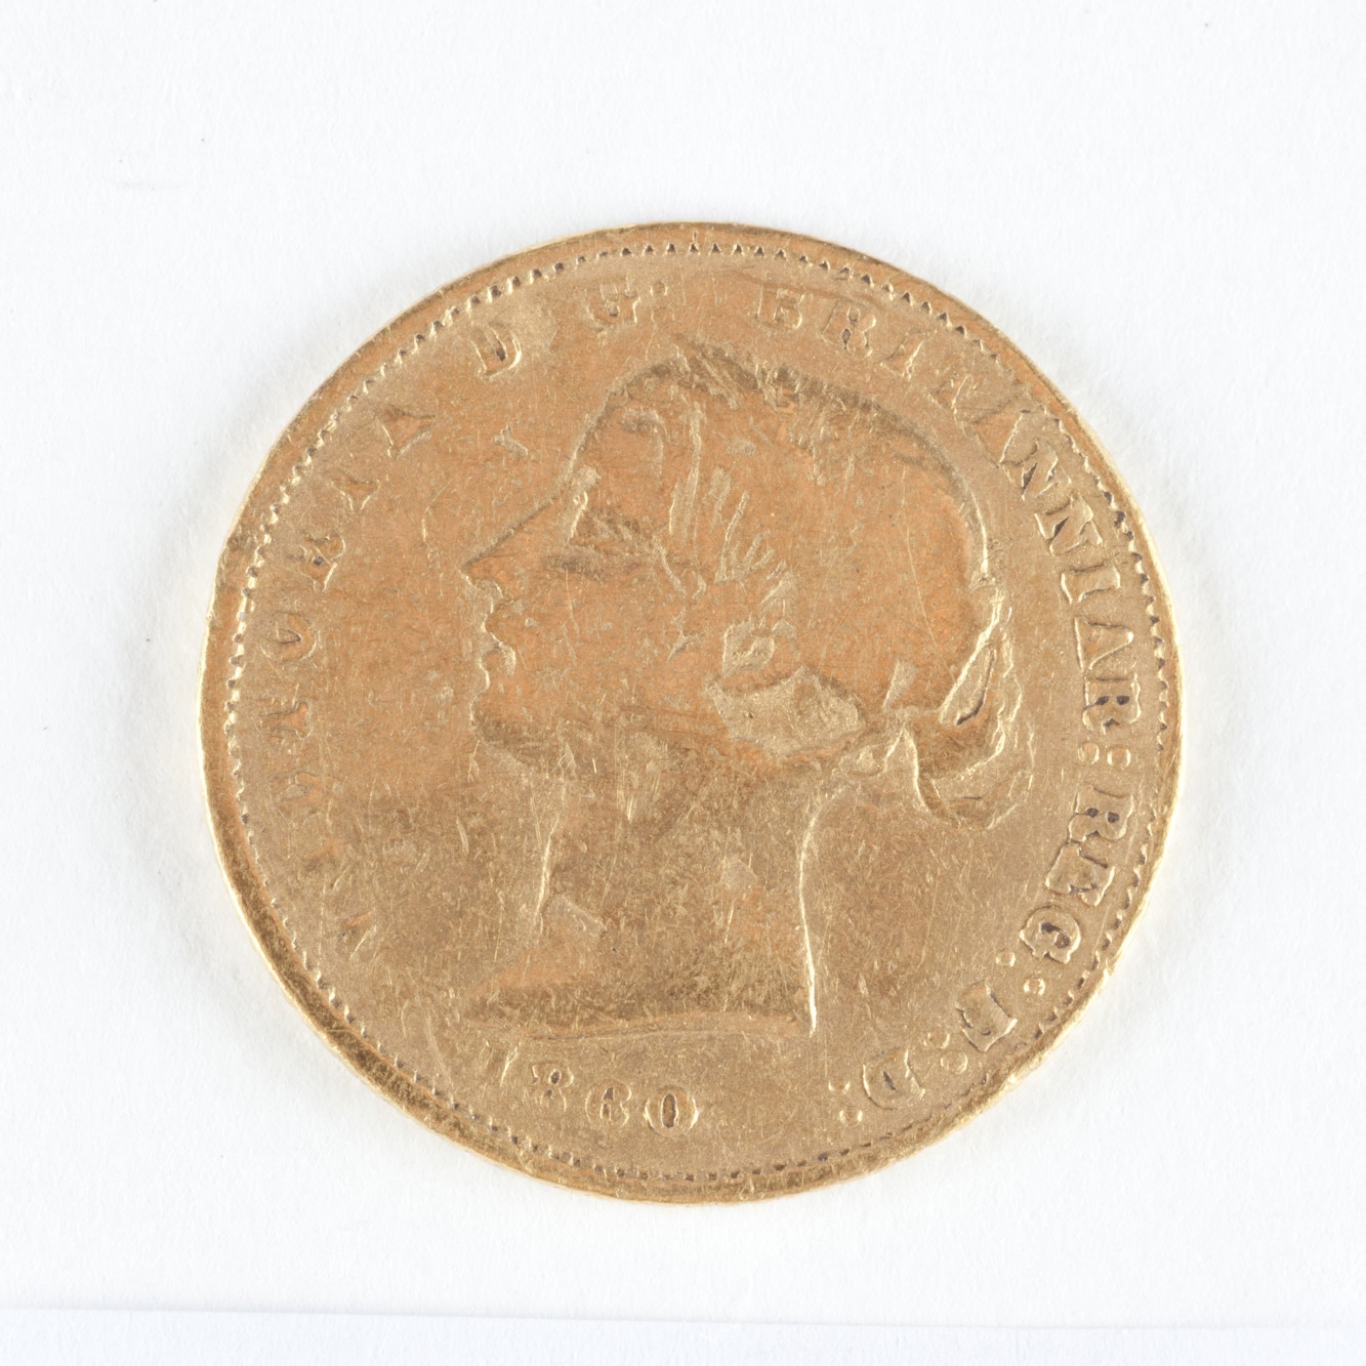 Gold coin with head on it.